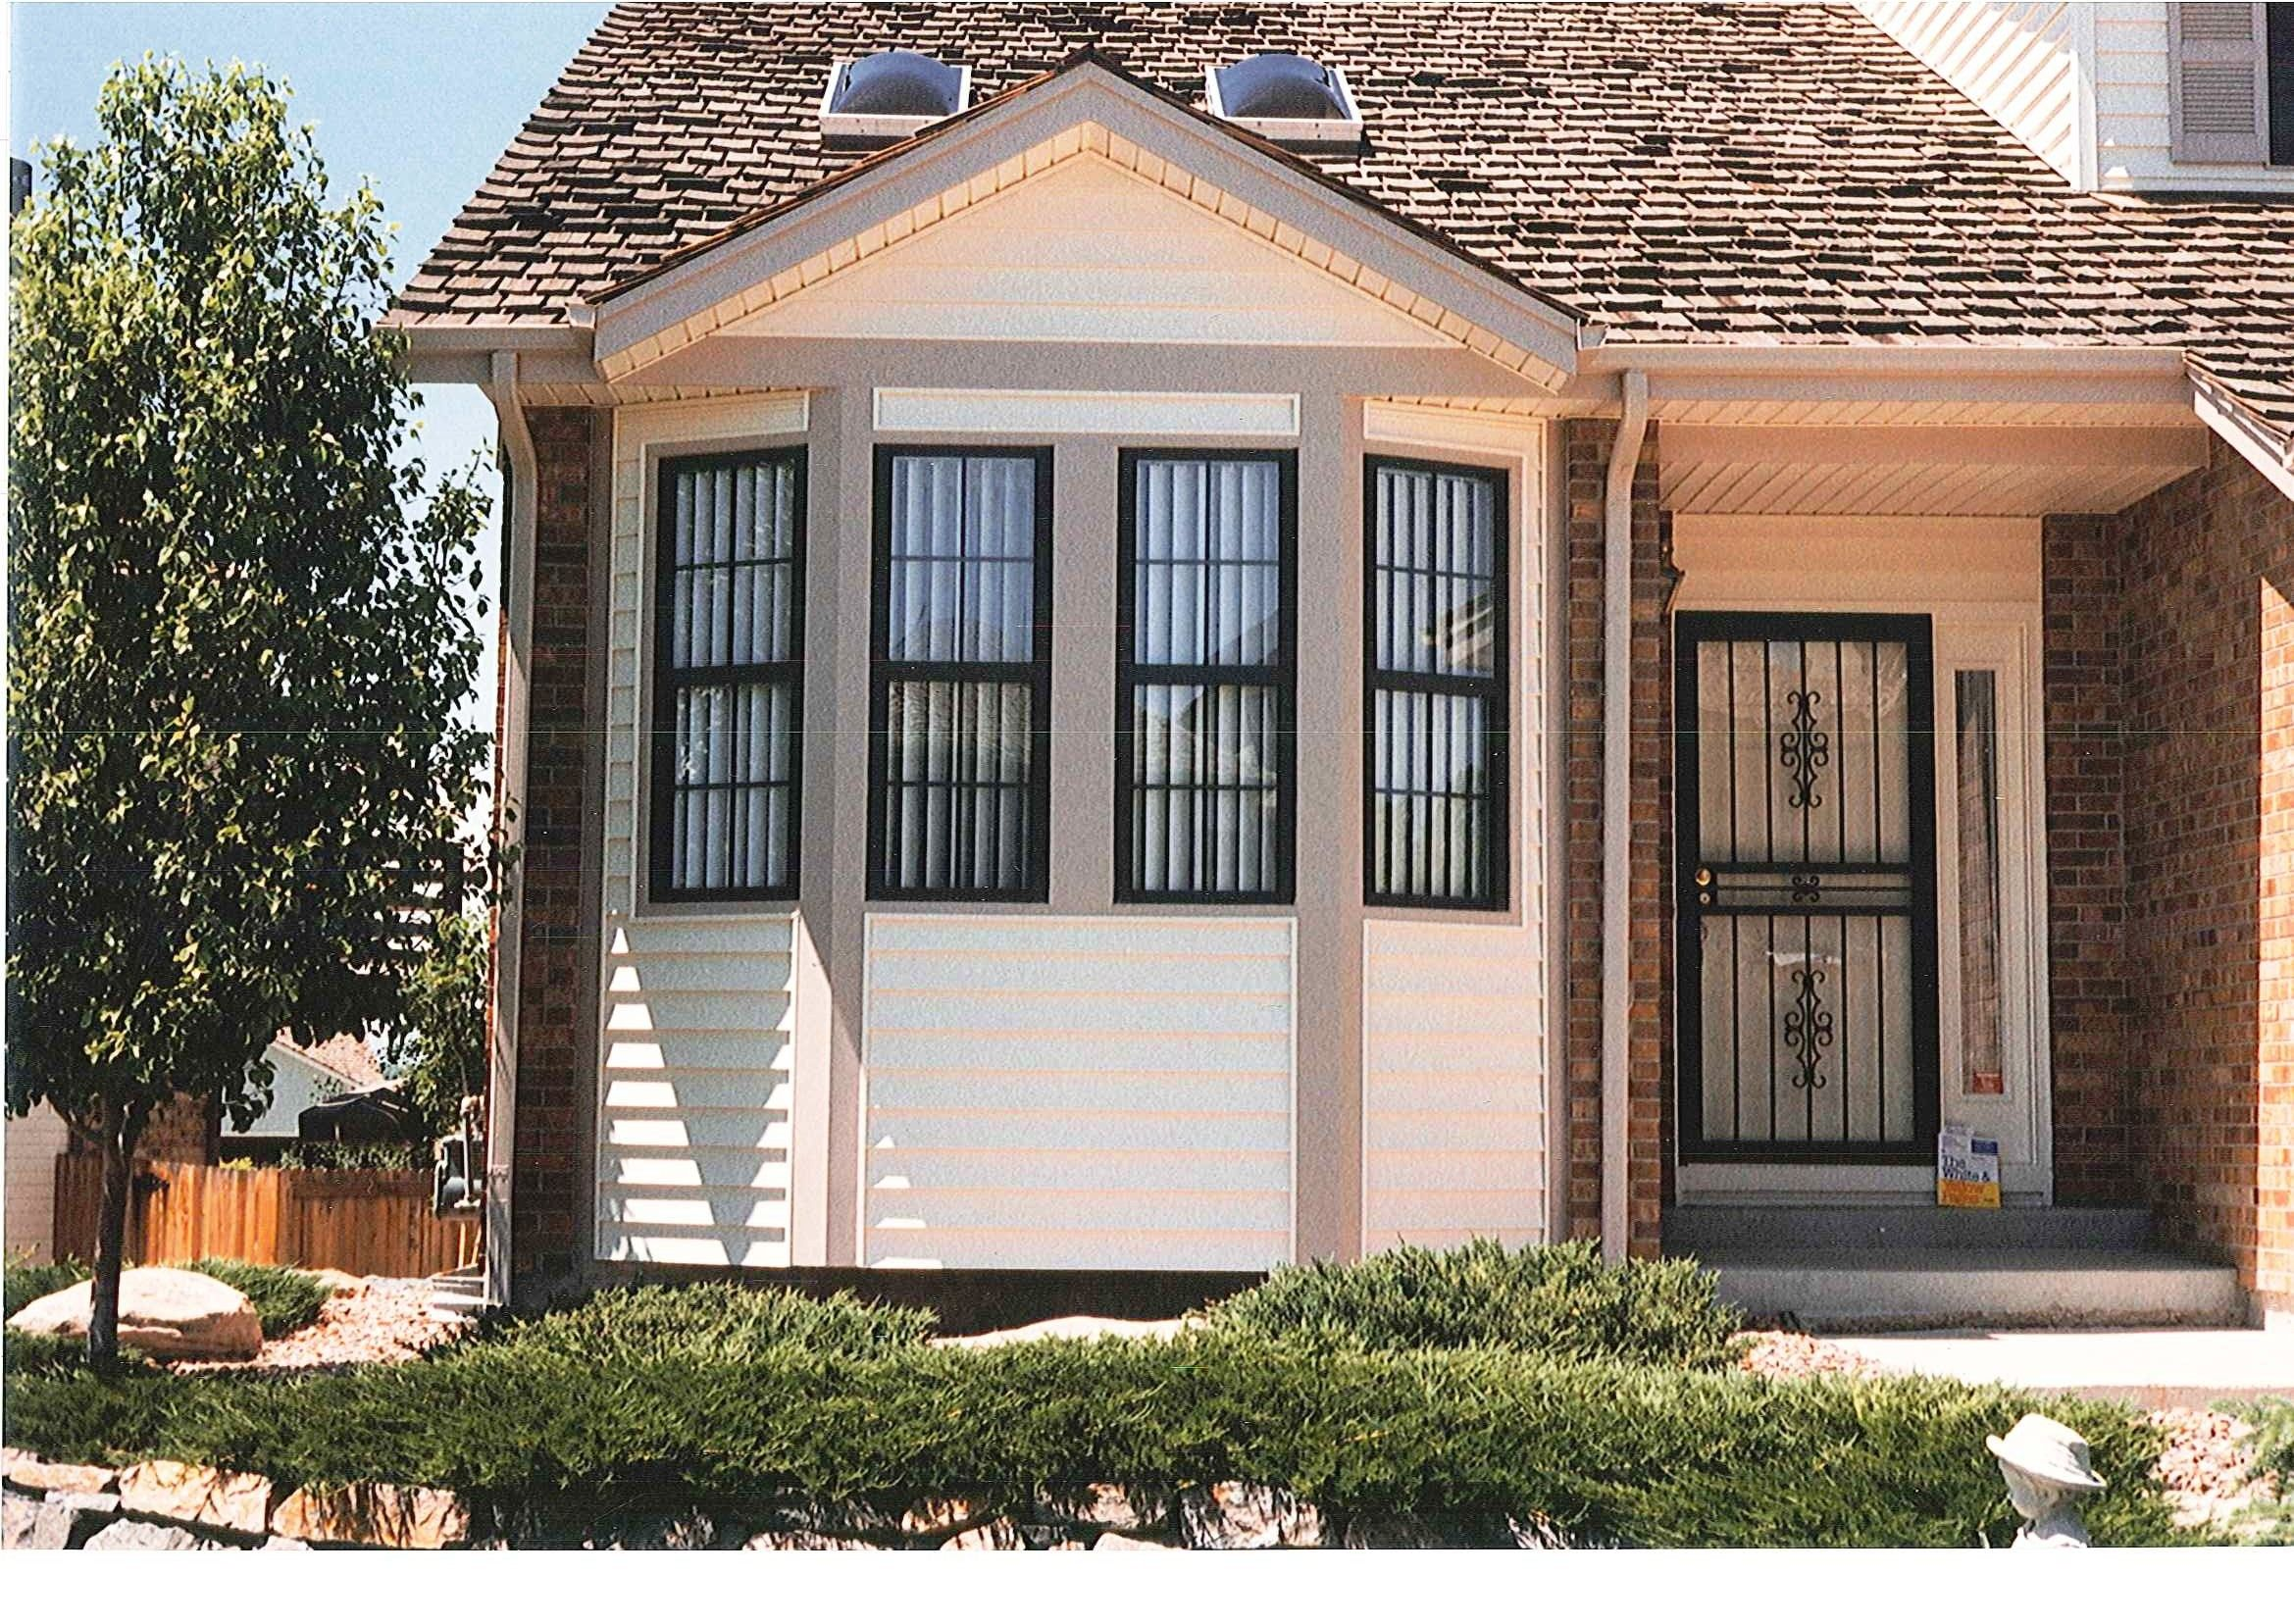 Front Elevation With Bay Window : Bay window siding options denver home